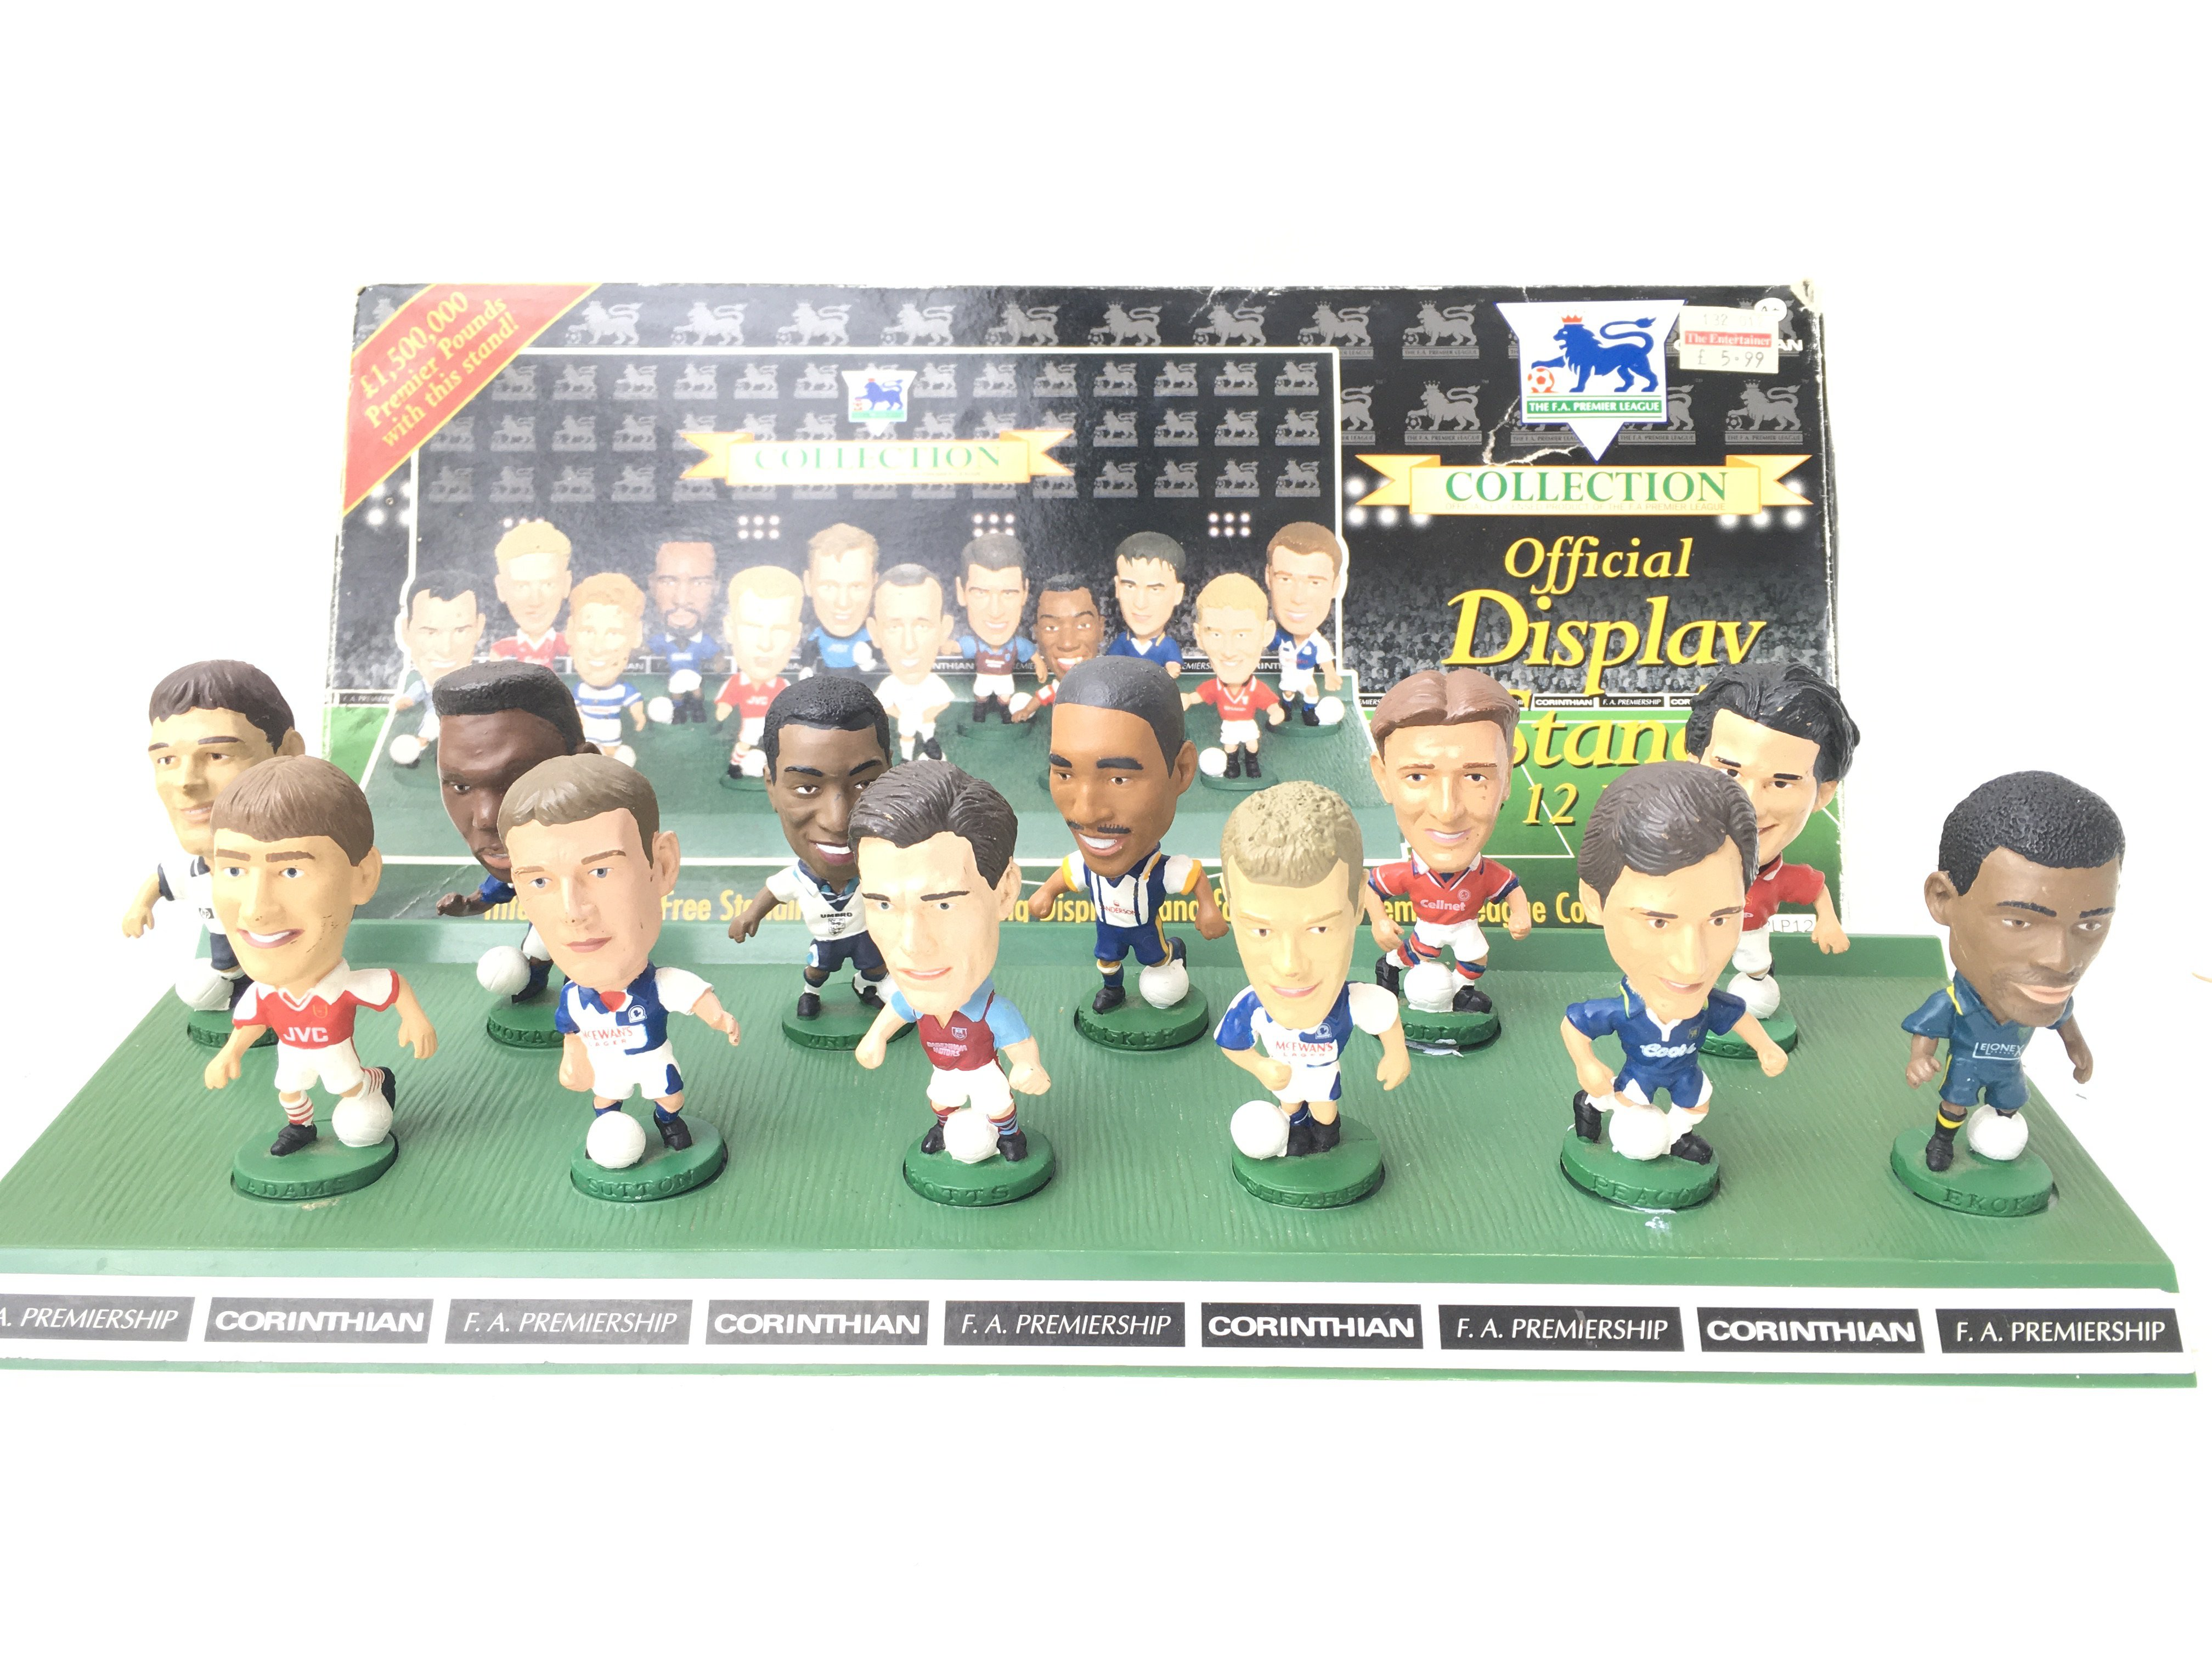 A Boxed Corinthian F.A Football collection Display Stand with Figures.